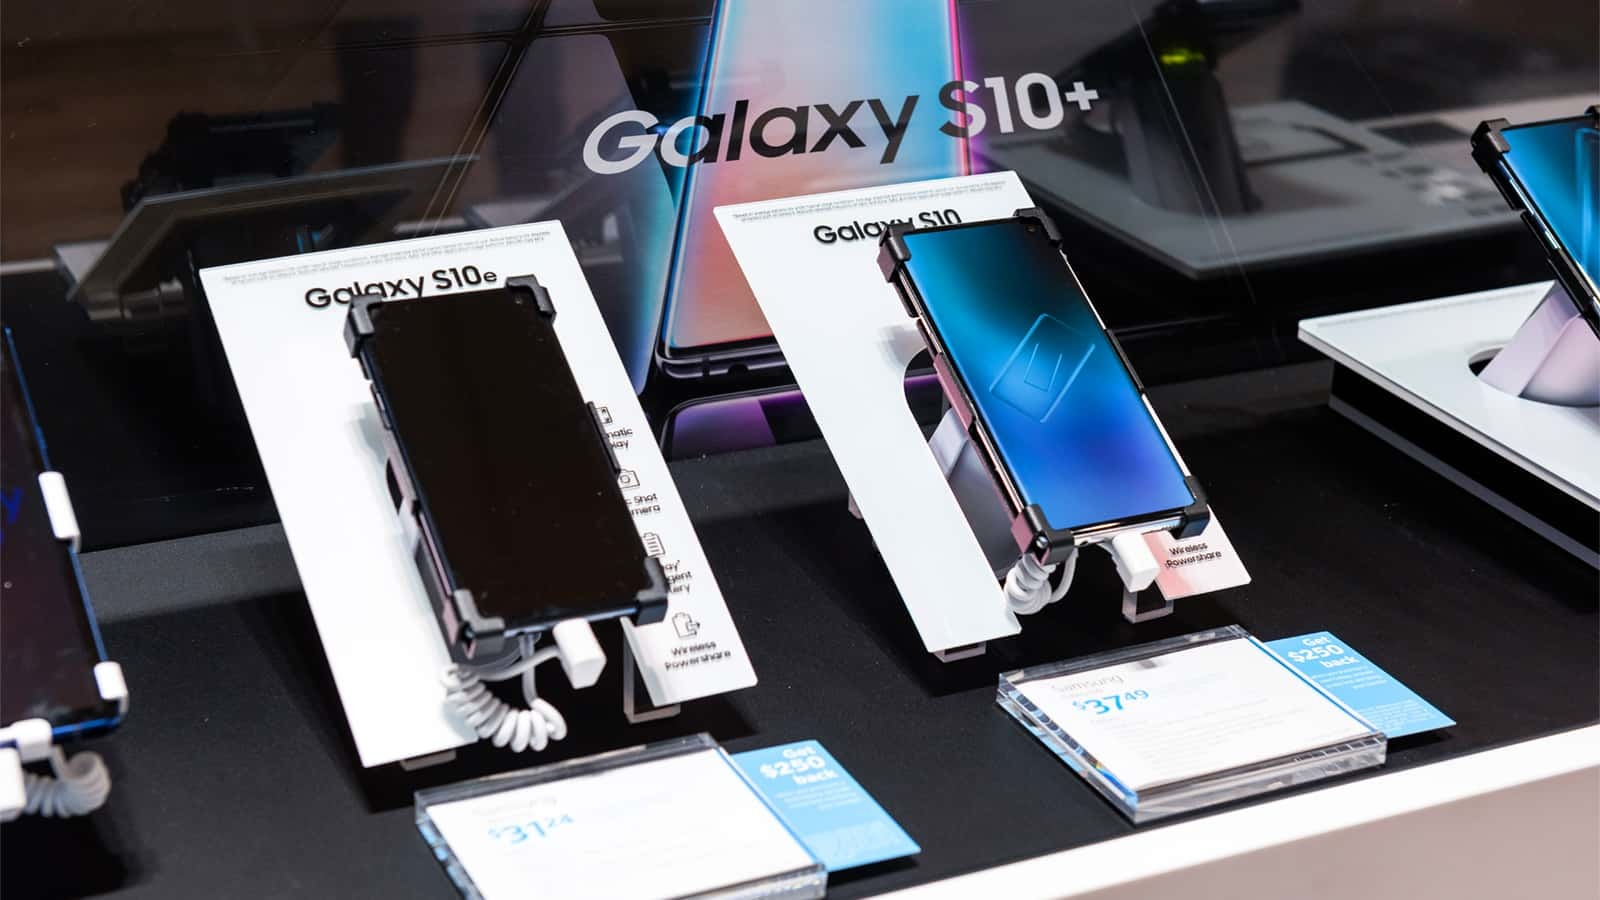 The Samsung Galaxy S10 is on display in stores across the country.